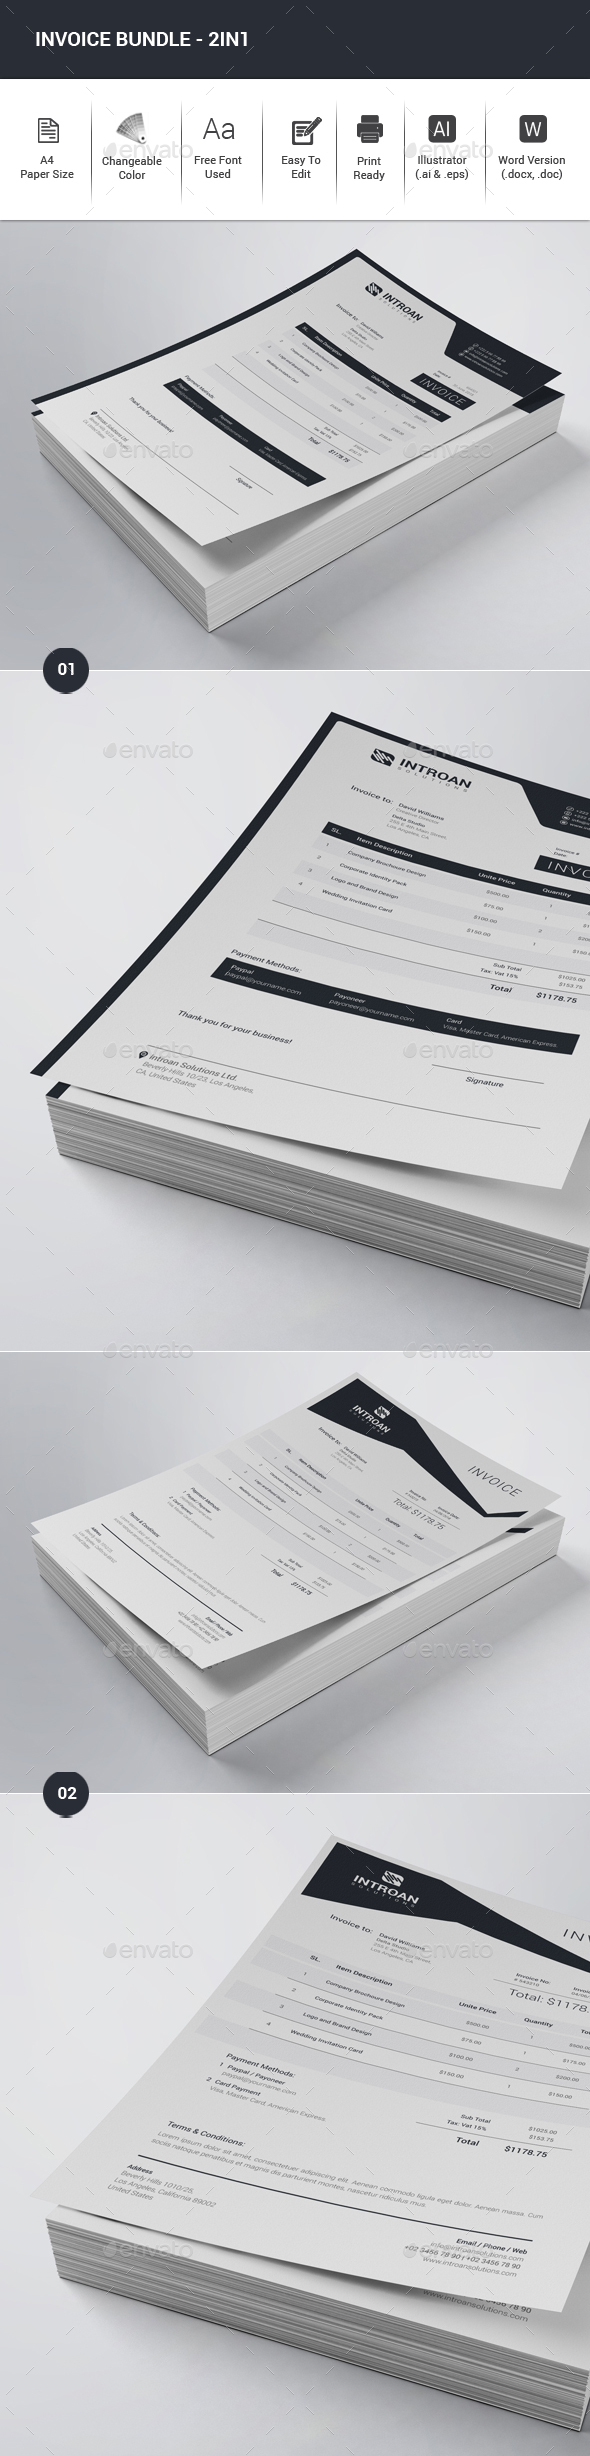 Invoice Bundle - 2in1 - Proposals & Invoices Stationery